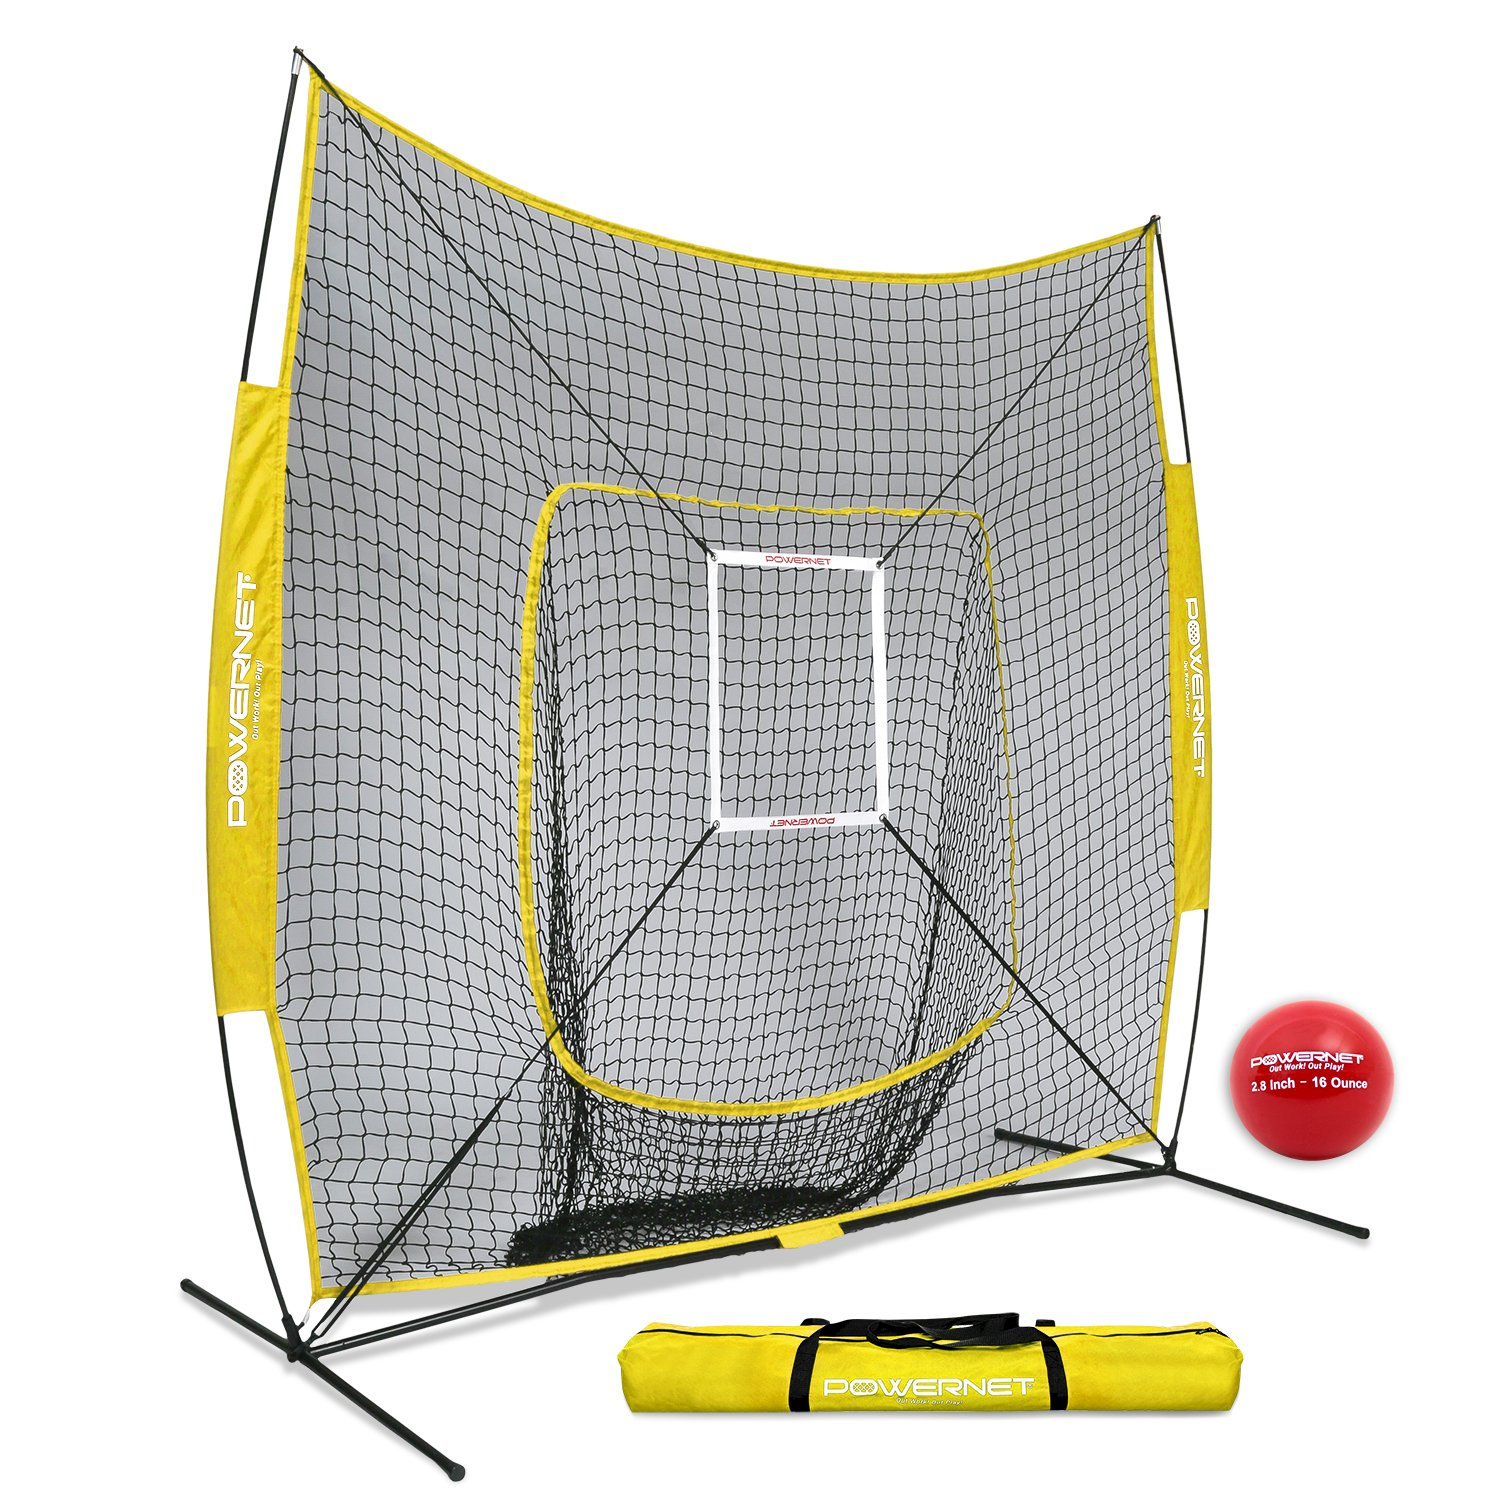 PowerNet DLX 7x7 Baseball Softball Hitting Net + Weighted Heavy Ball + Strike Zone Bundle (Yellow) | Training Set | Practice Equipment Batting Soft Toss Pitching | Team Color | Portable Backstop by PowerNet